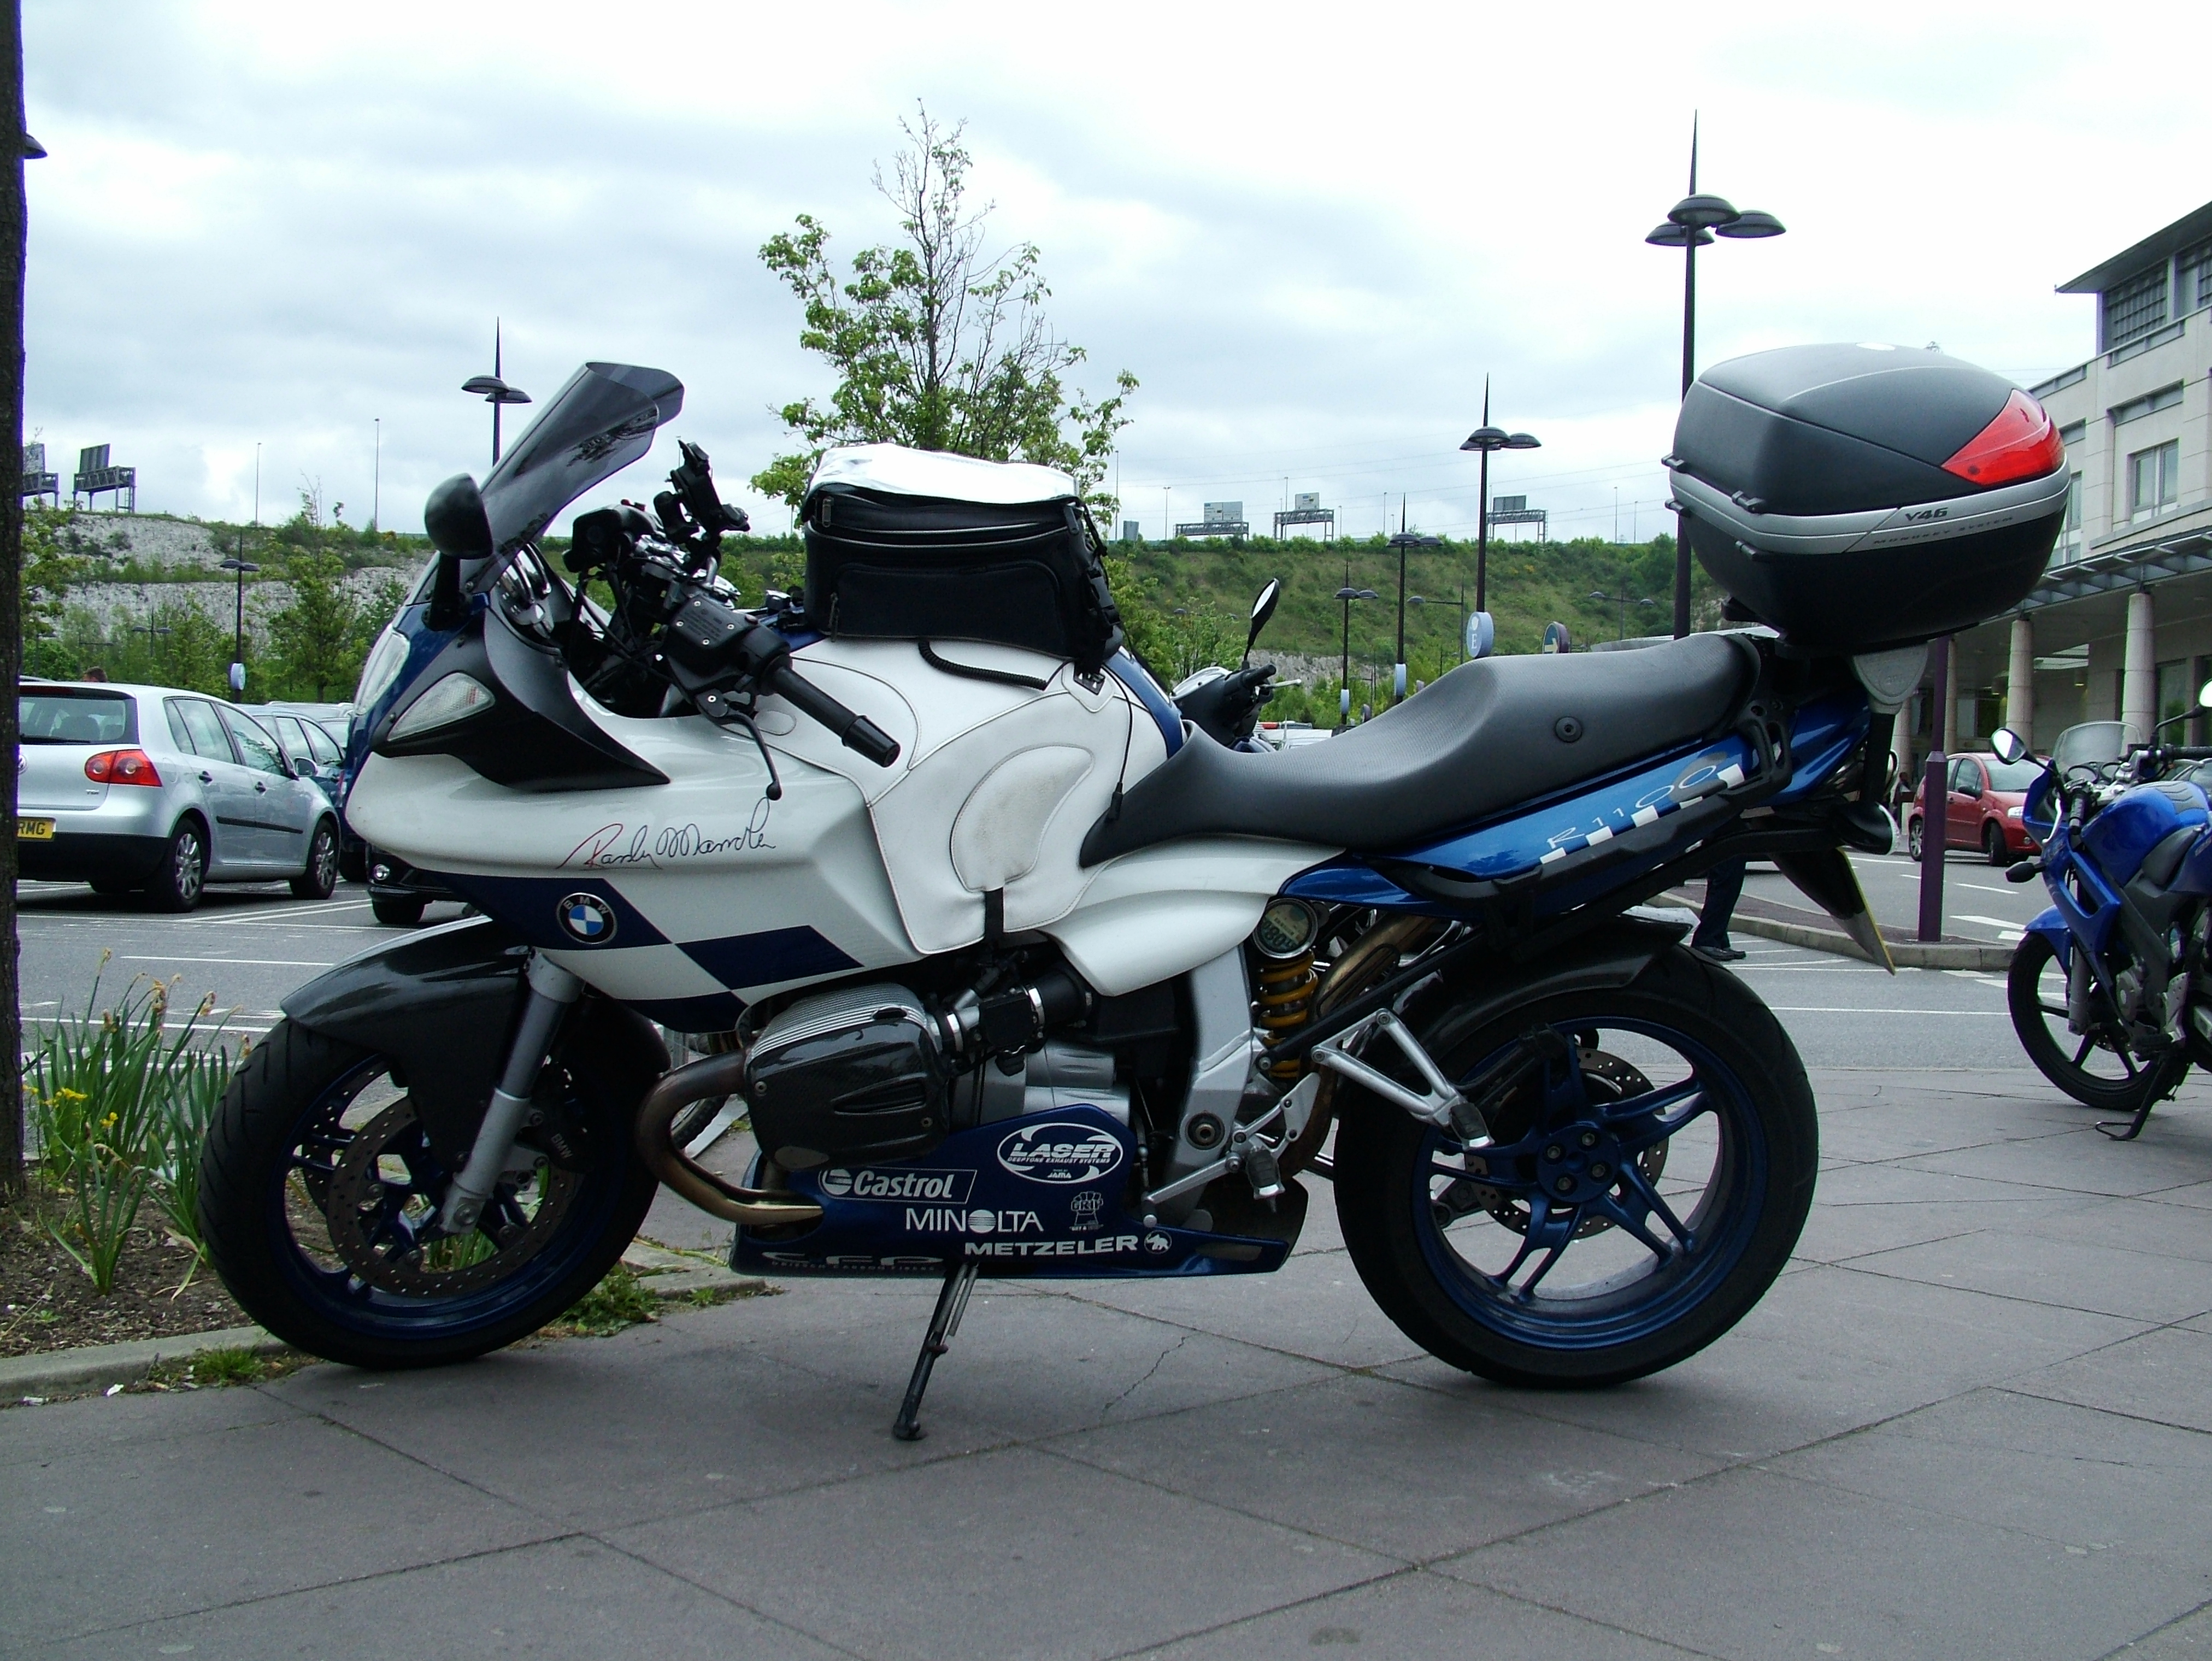 BMW R1100s | Flickr - Photo Sharing!